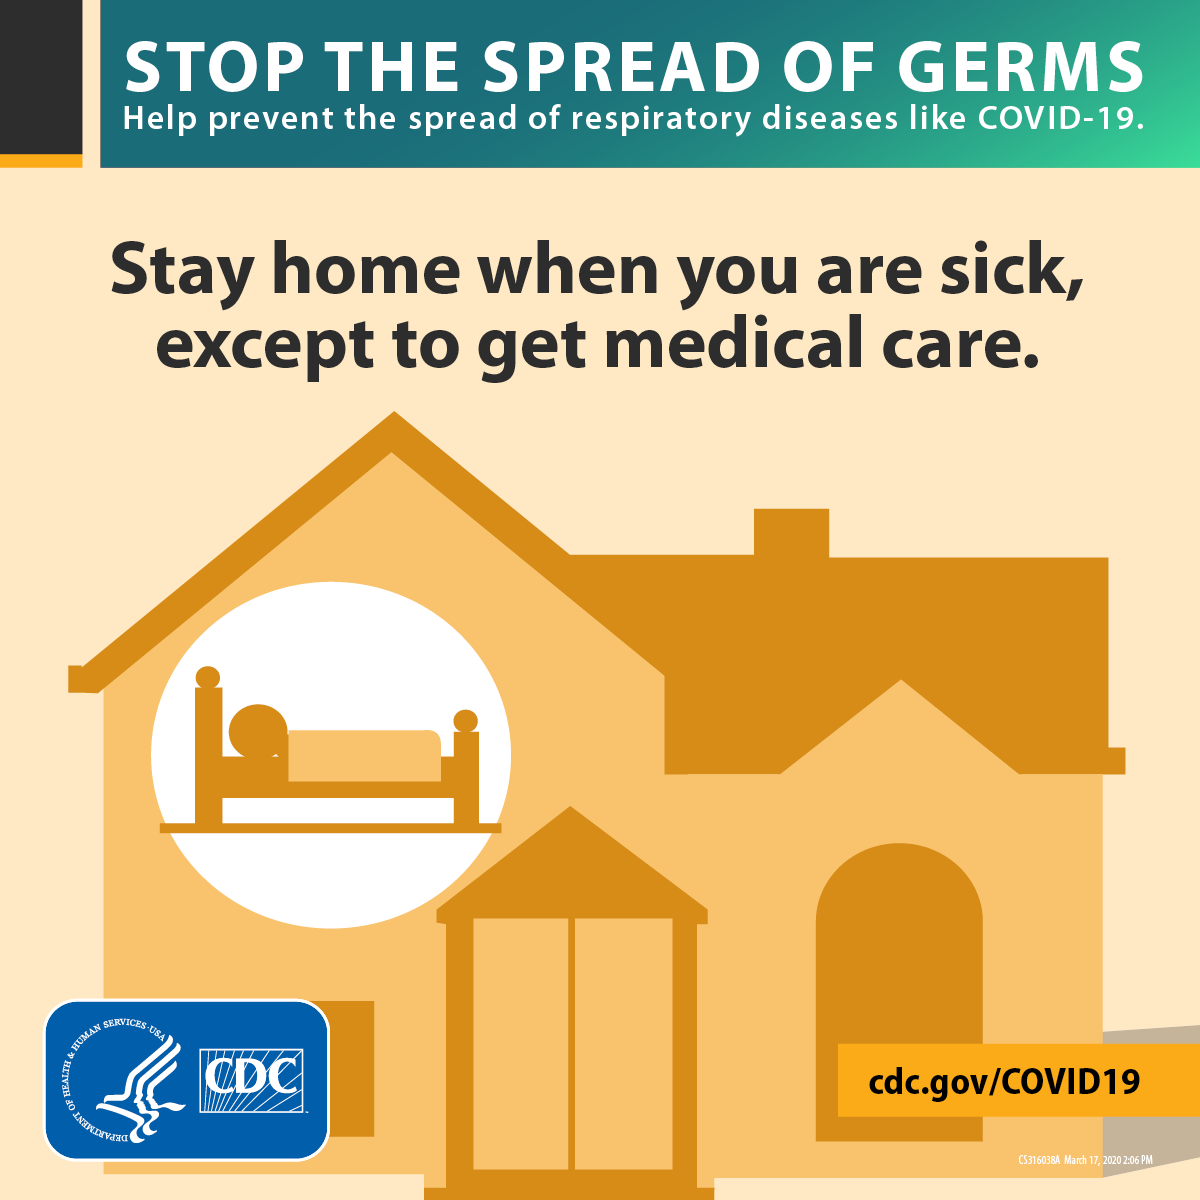 Stop the Spread of Germs. Help prevent the spread of respiratory diseases like COVID-19. Stay home when you are sick, except to get medical care.